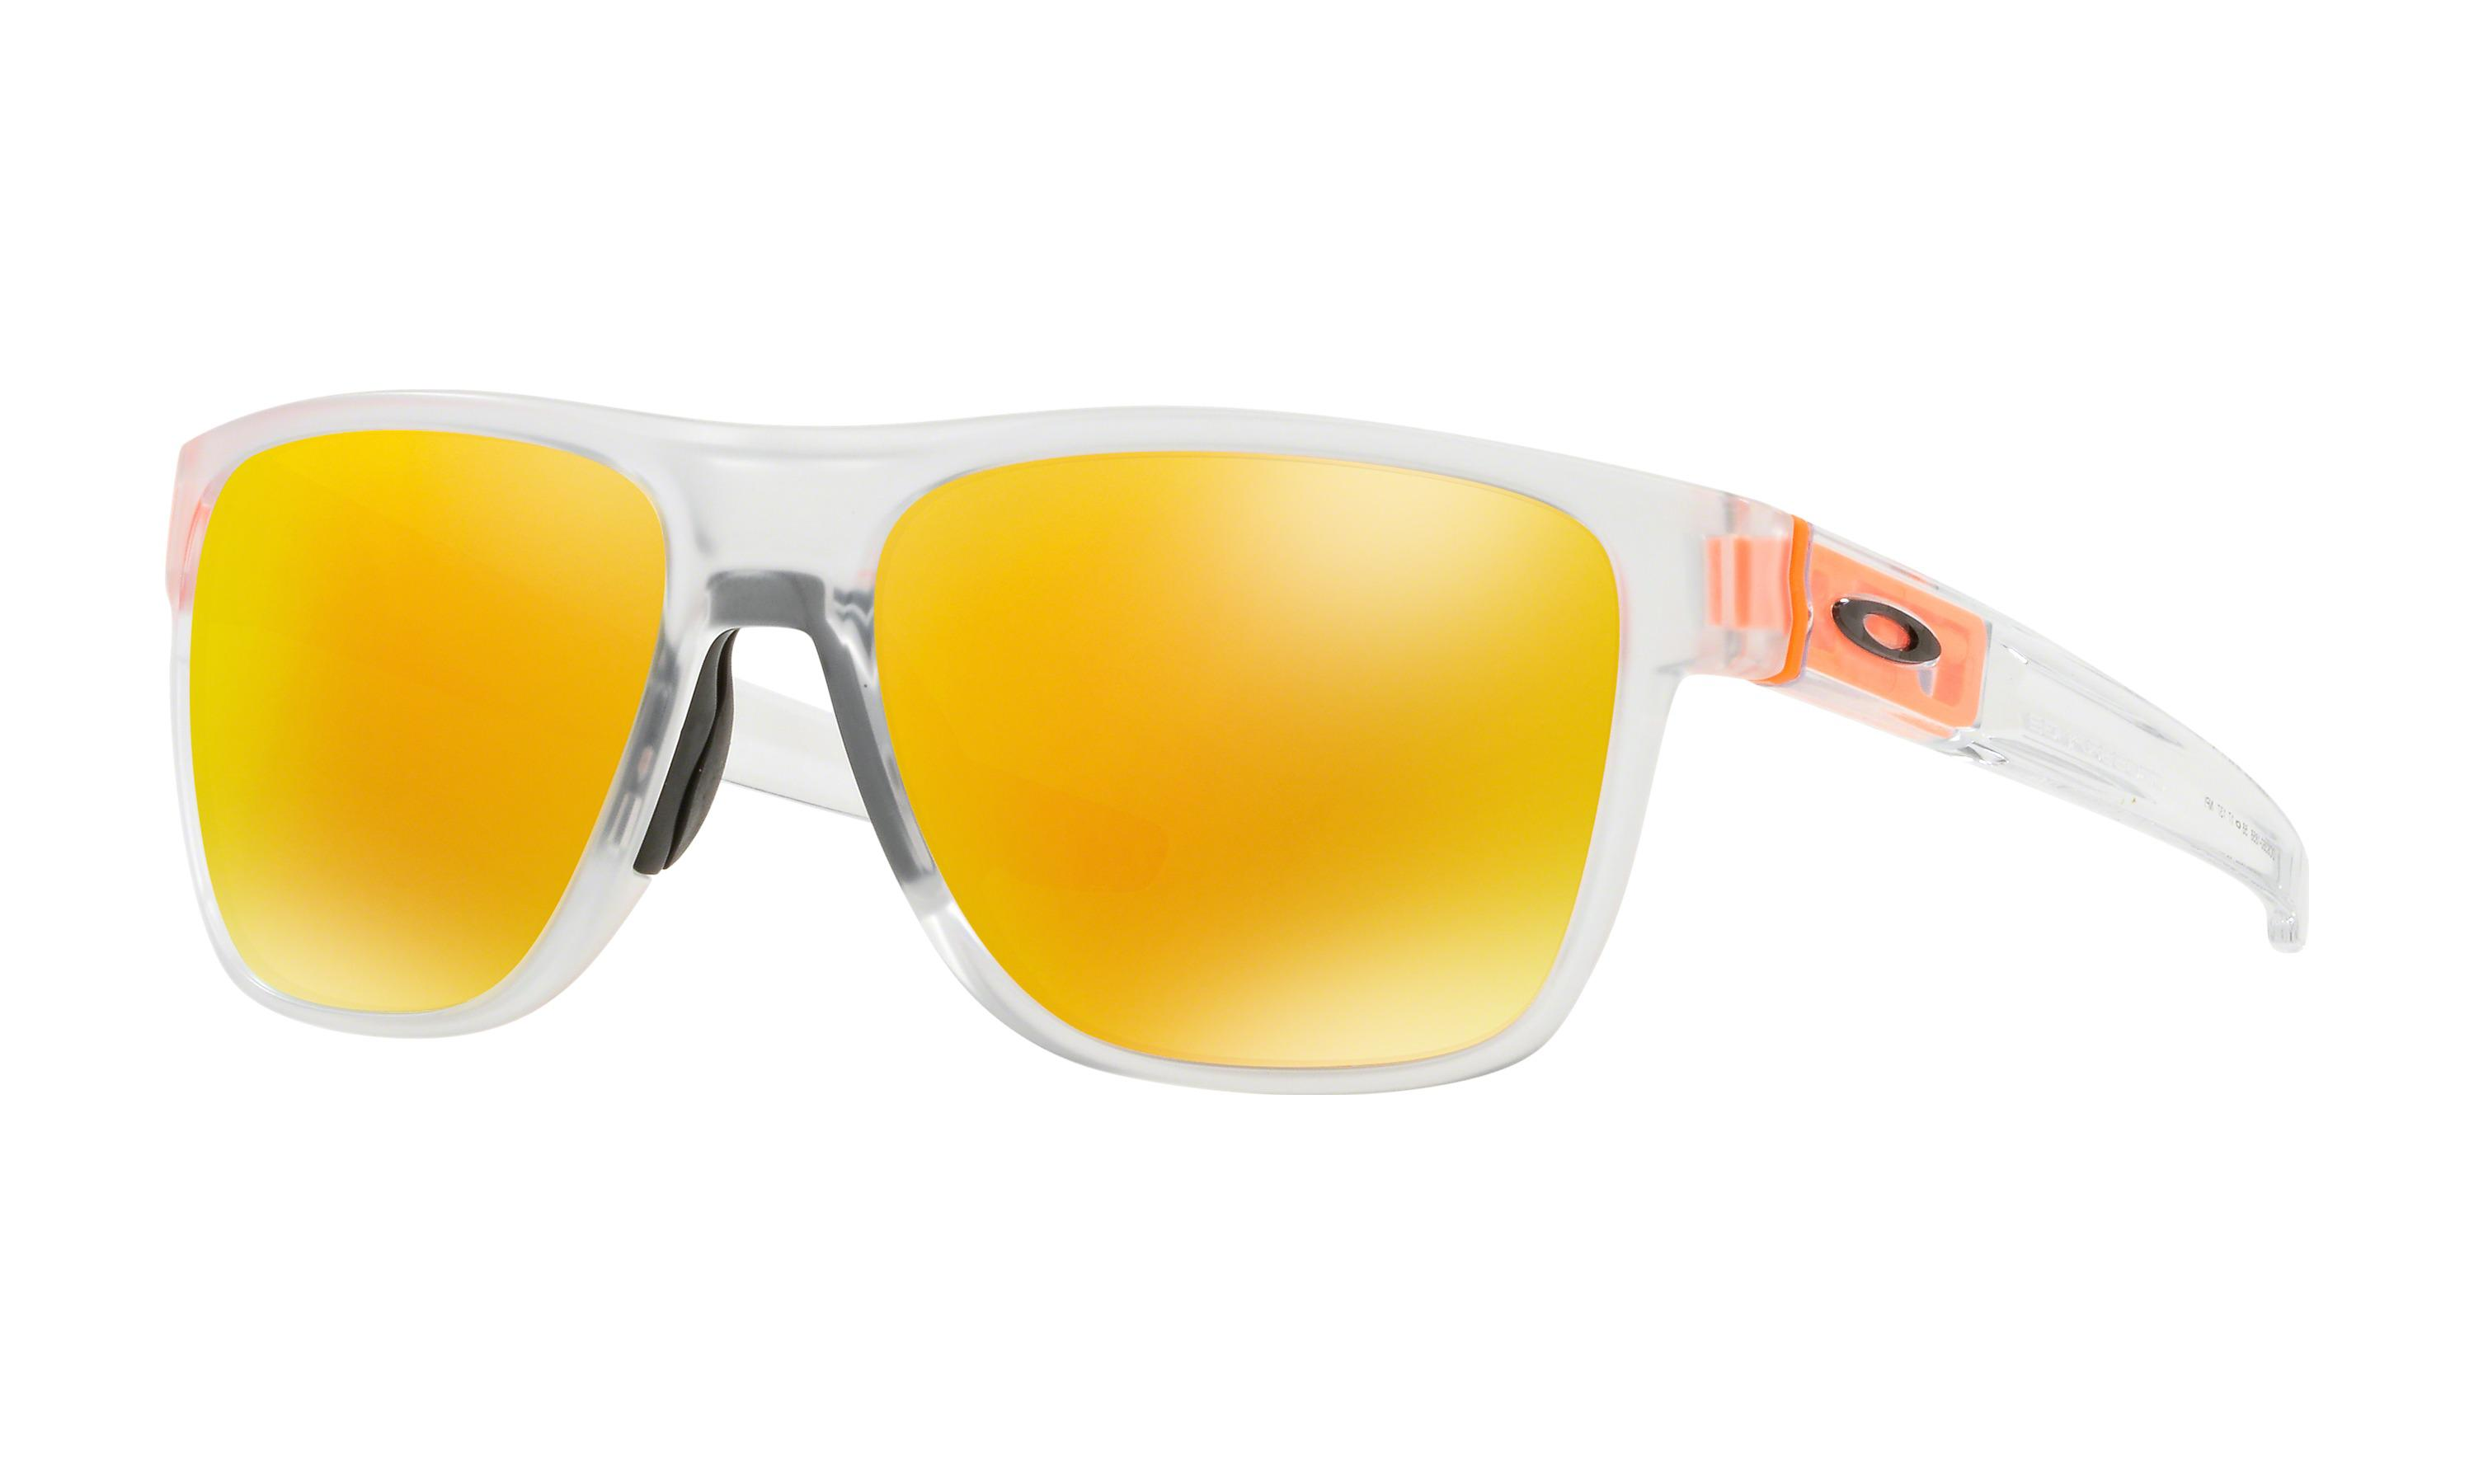 6f1a9f7c2b9 Lyst - Oakley Crossrange Xl Crystal Pop for Men